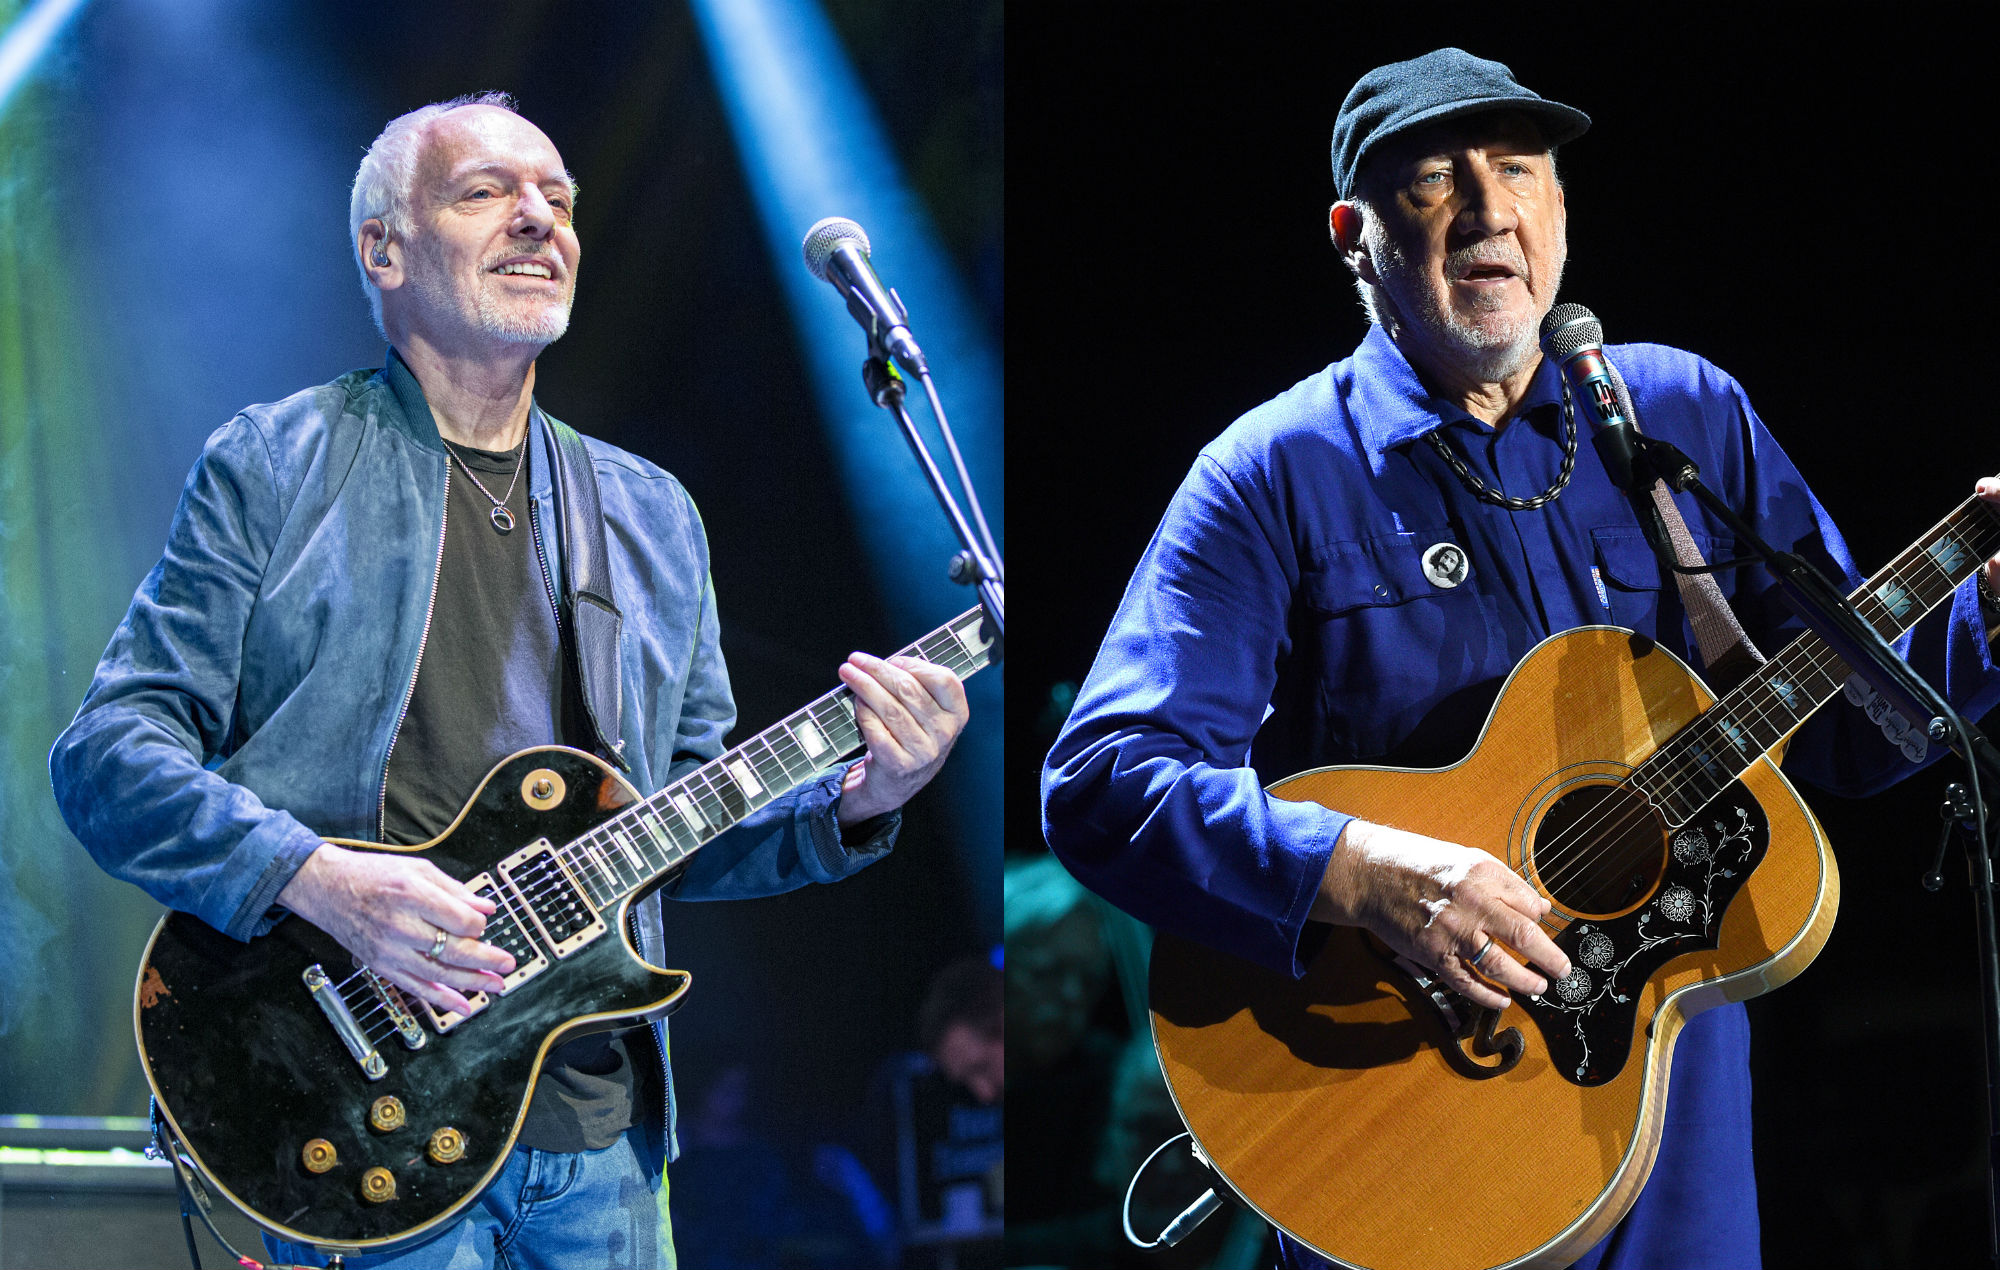 Peter Frampton says Pete Townshend once asked him to join The Who